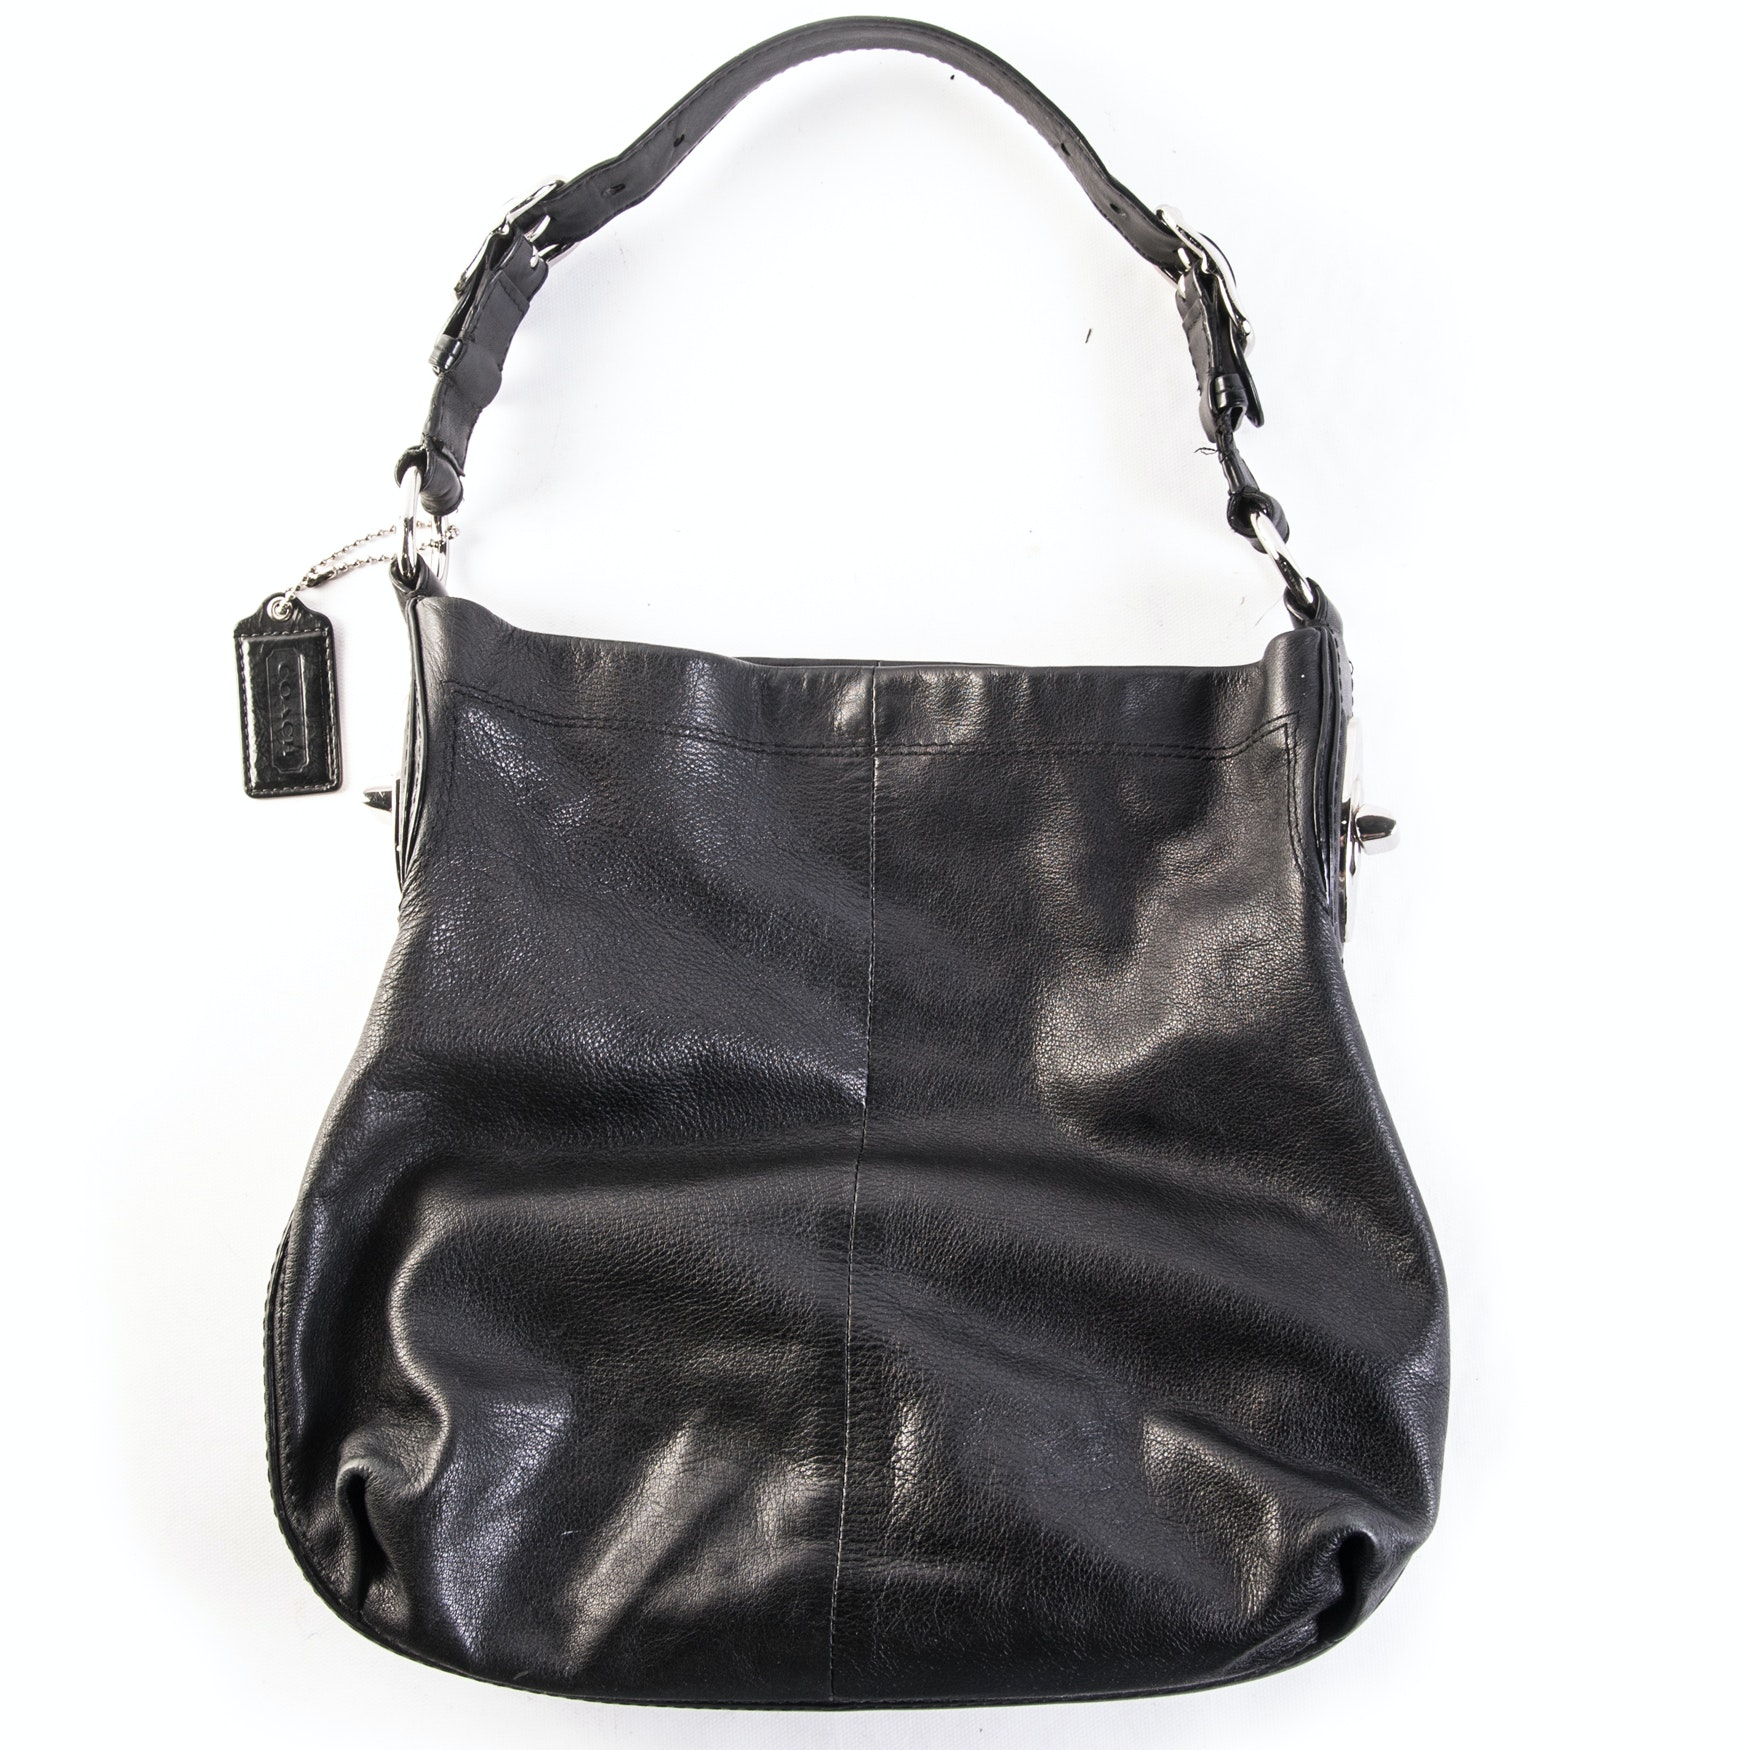 Coach Peyton Black Leather Turnlock Hobo Handbag